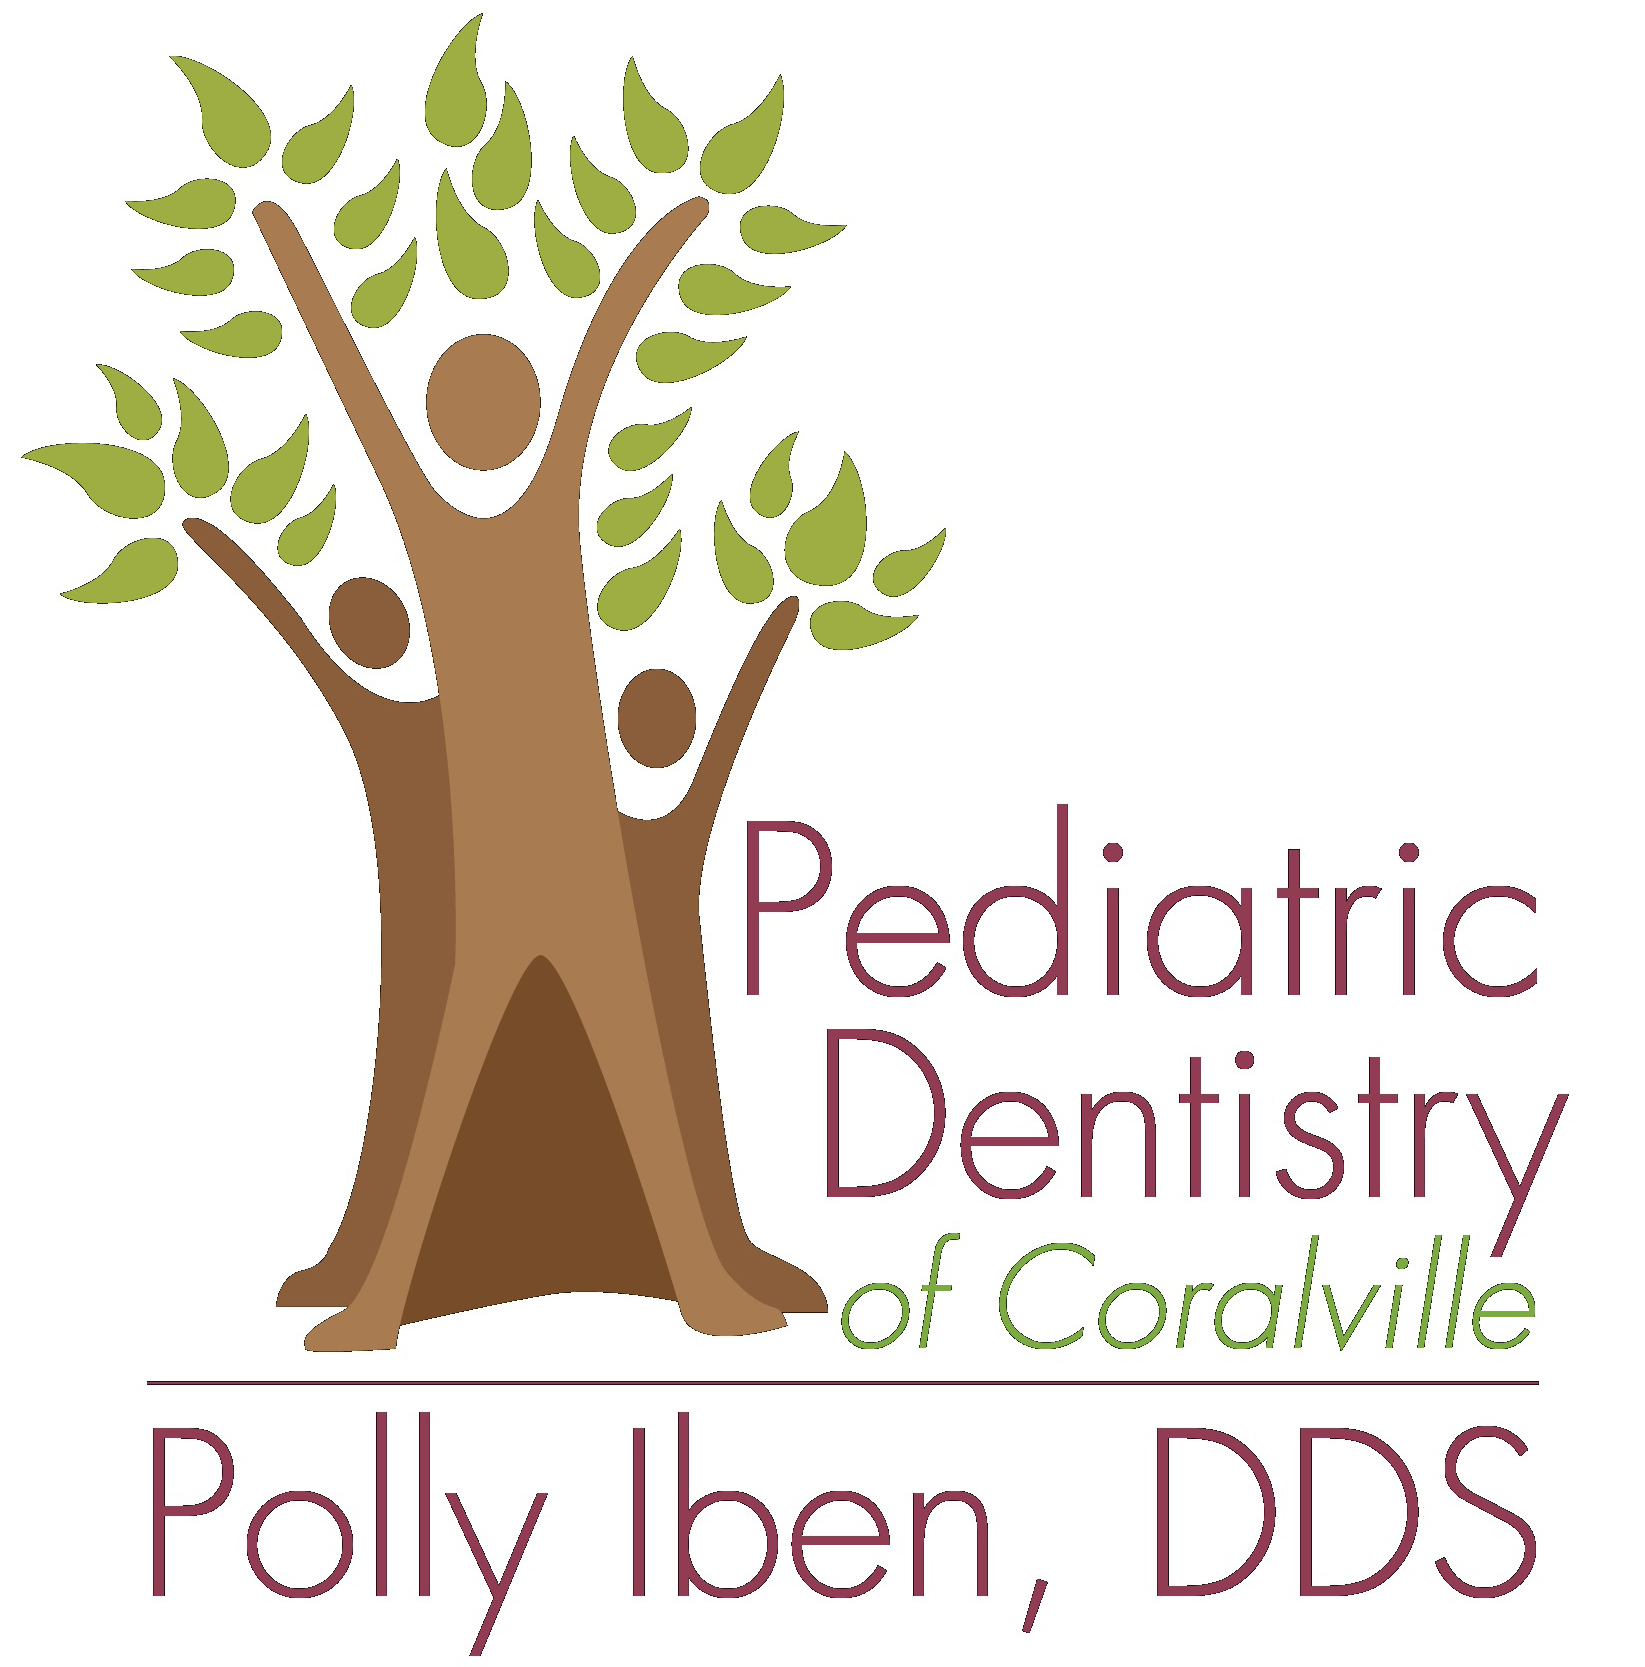 Pediatric Dentistry of Coralville